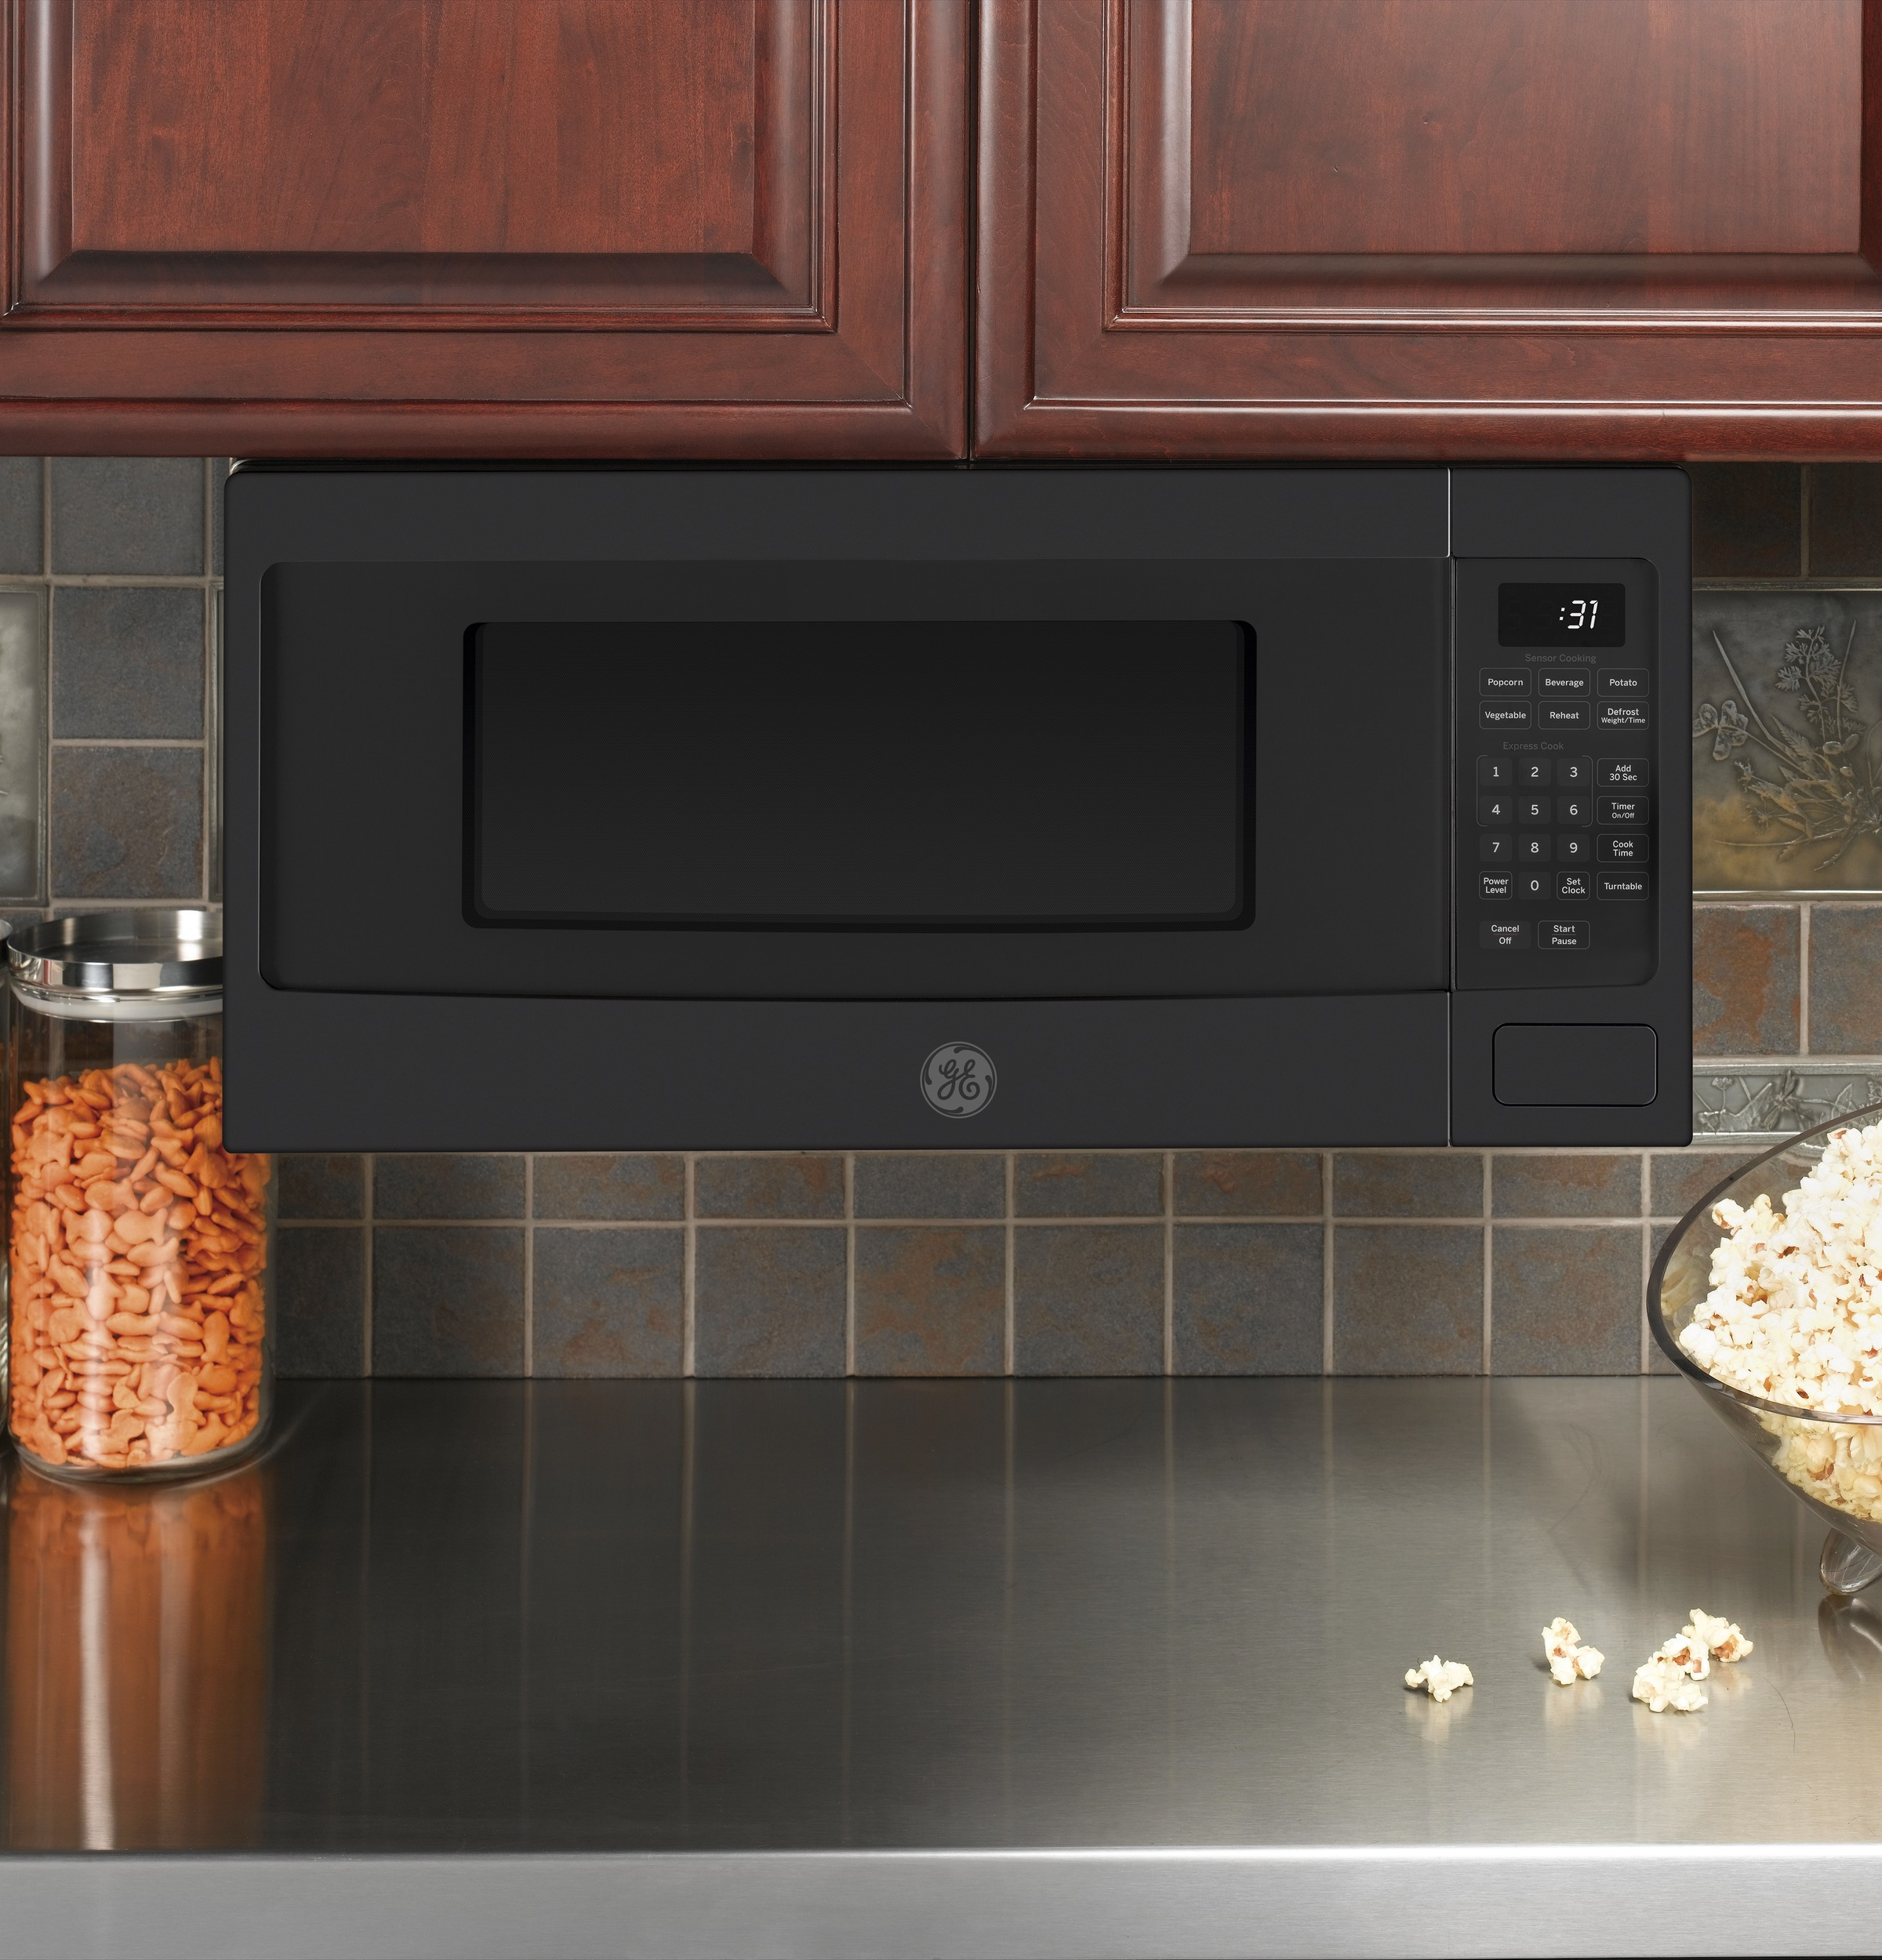 Model: PEM31FMDS | GE Profile™ Series 1.1 Cu. Ft. Countertop Microwave Oven